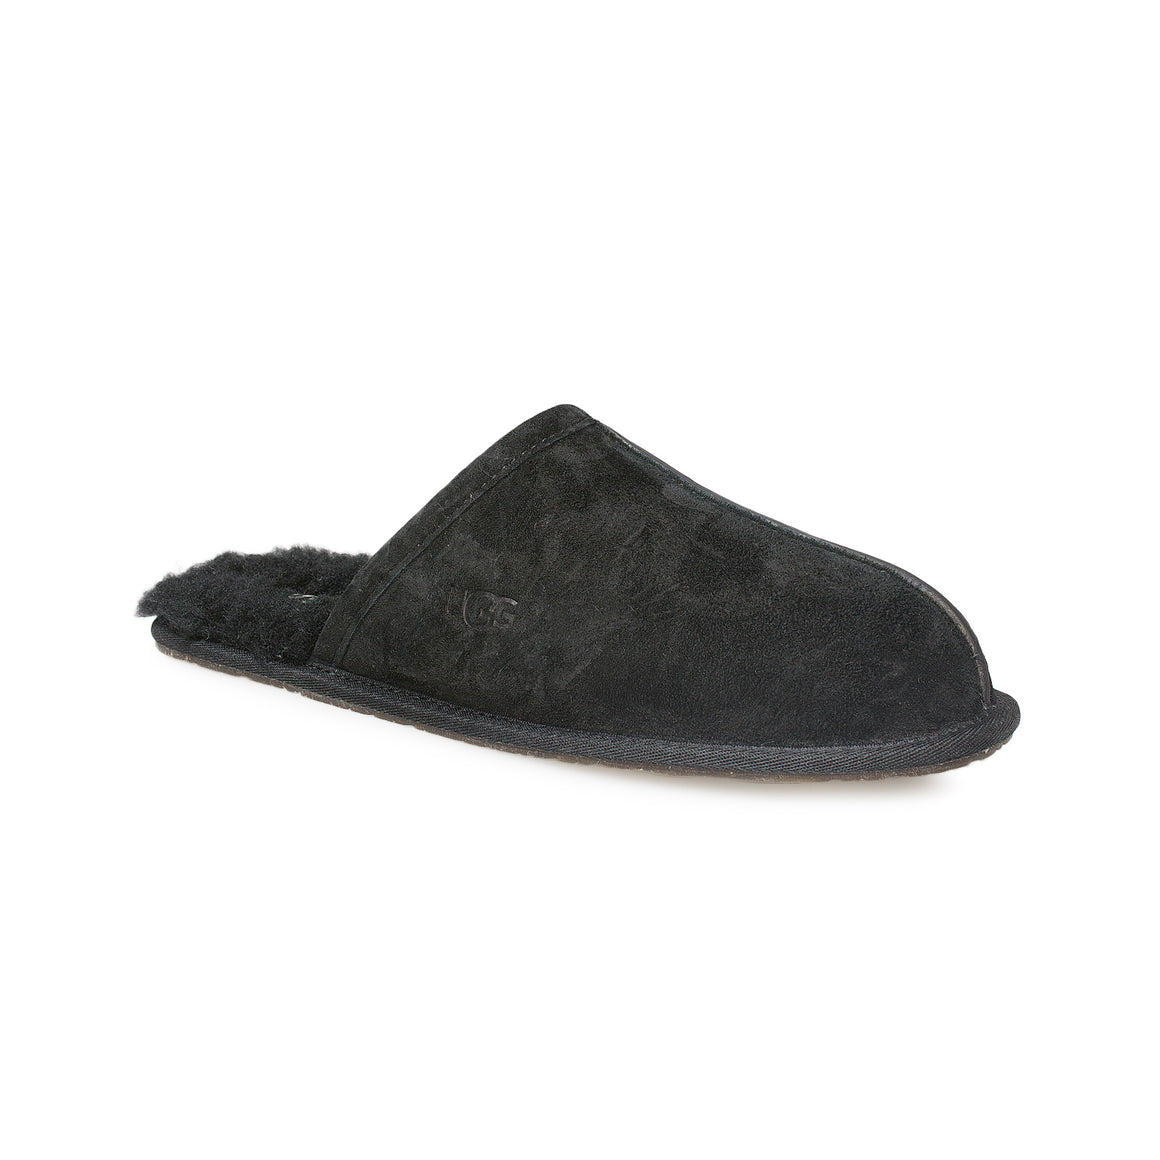 UGG Pearle Black Slippers - Women's